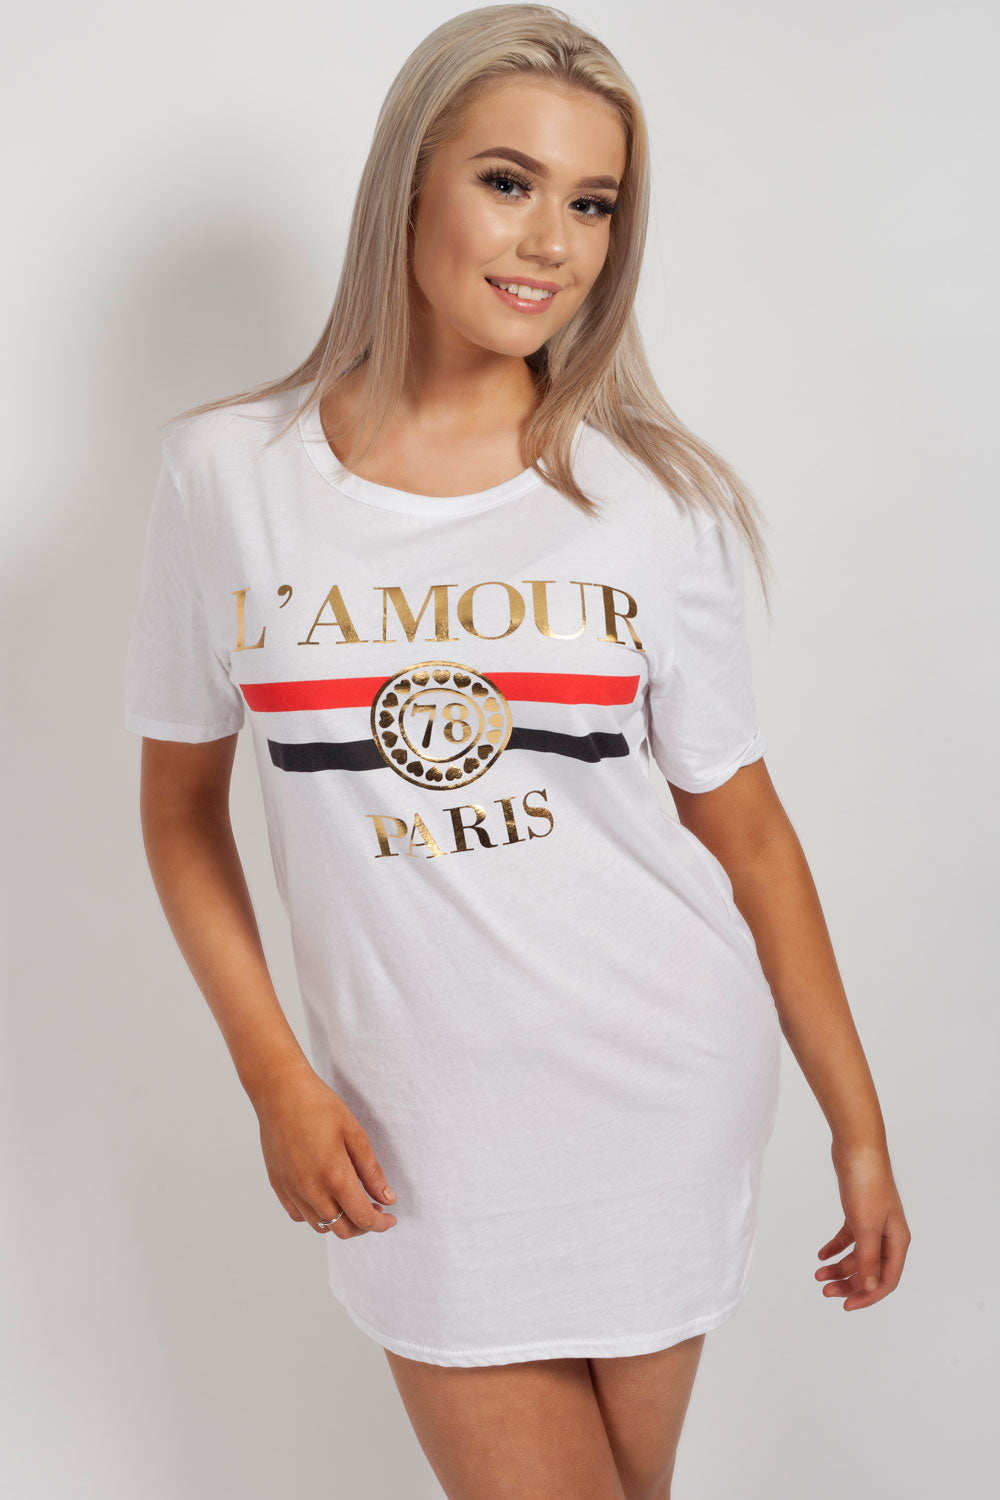 lamour paris white top womens